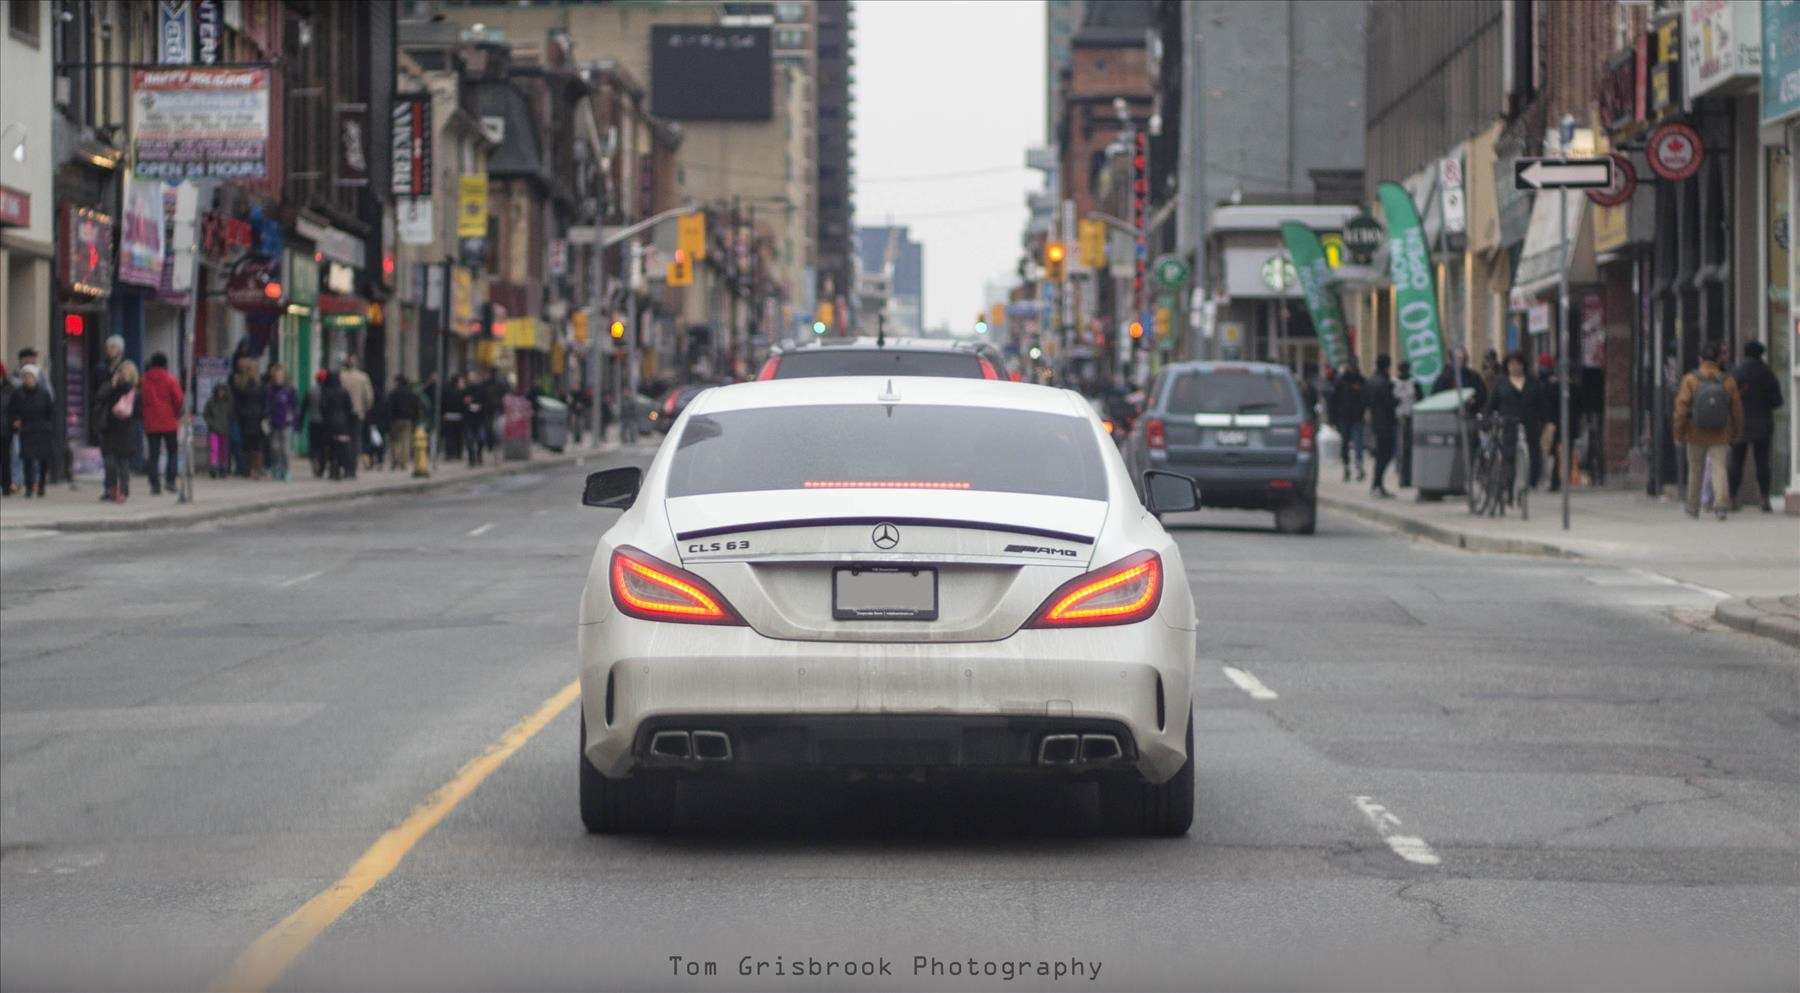 Downtown Toronto and a CLS63 AMG